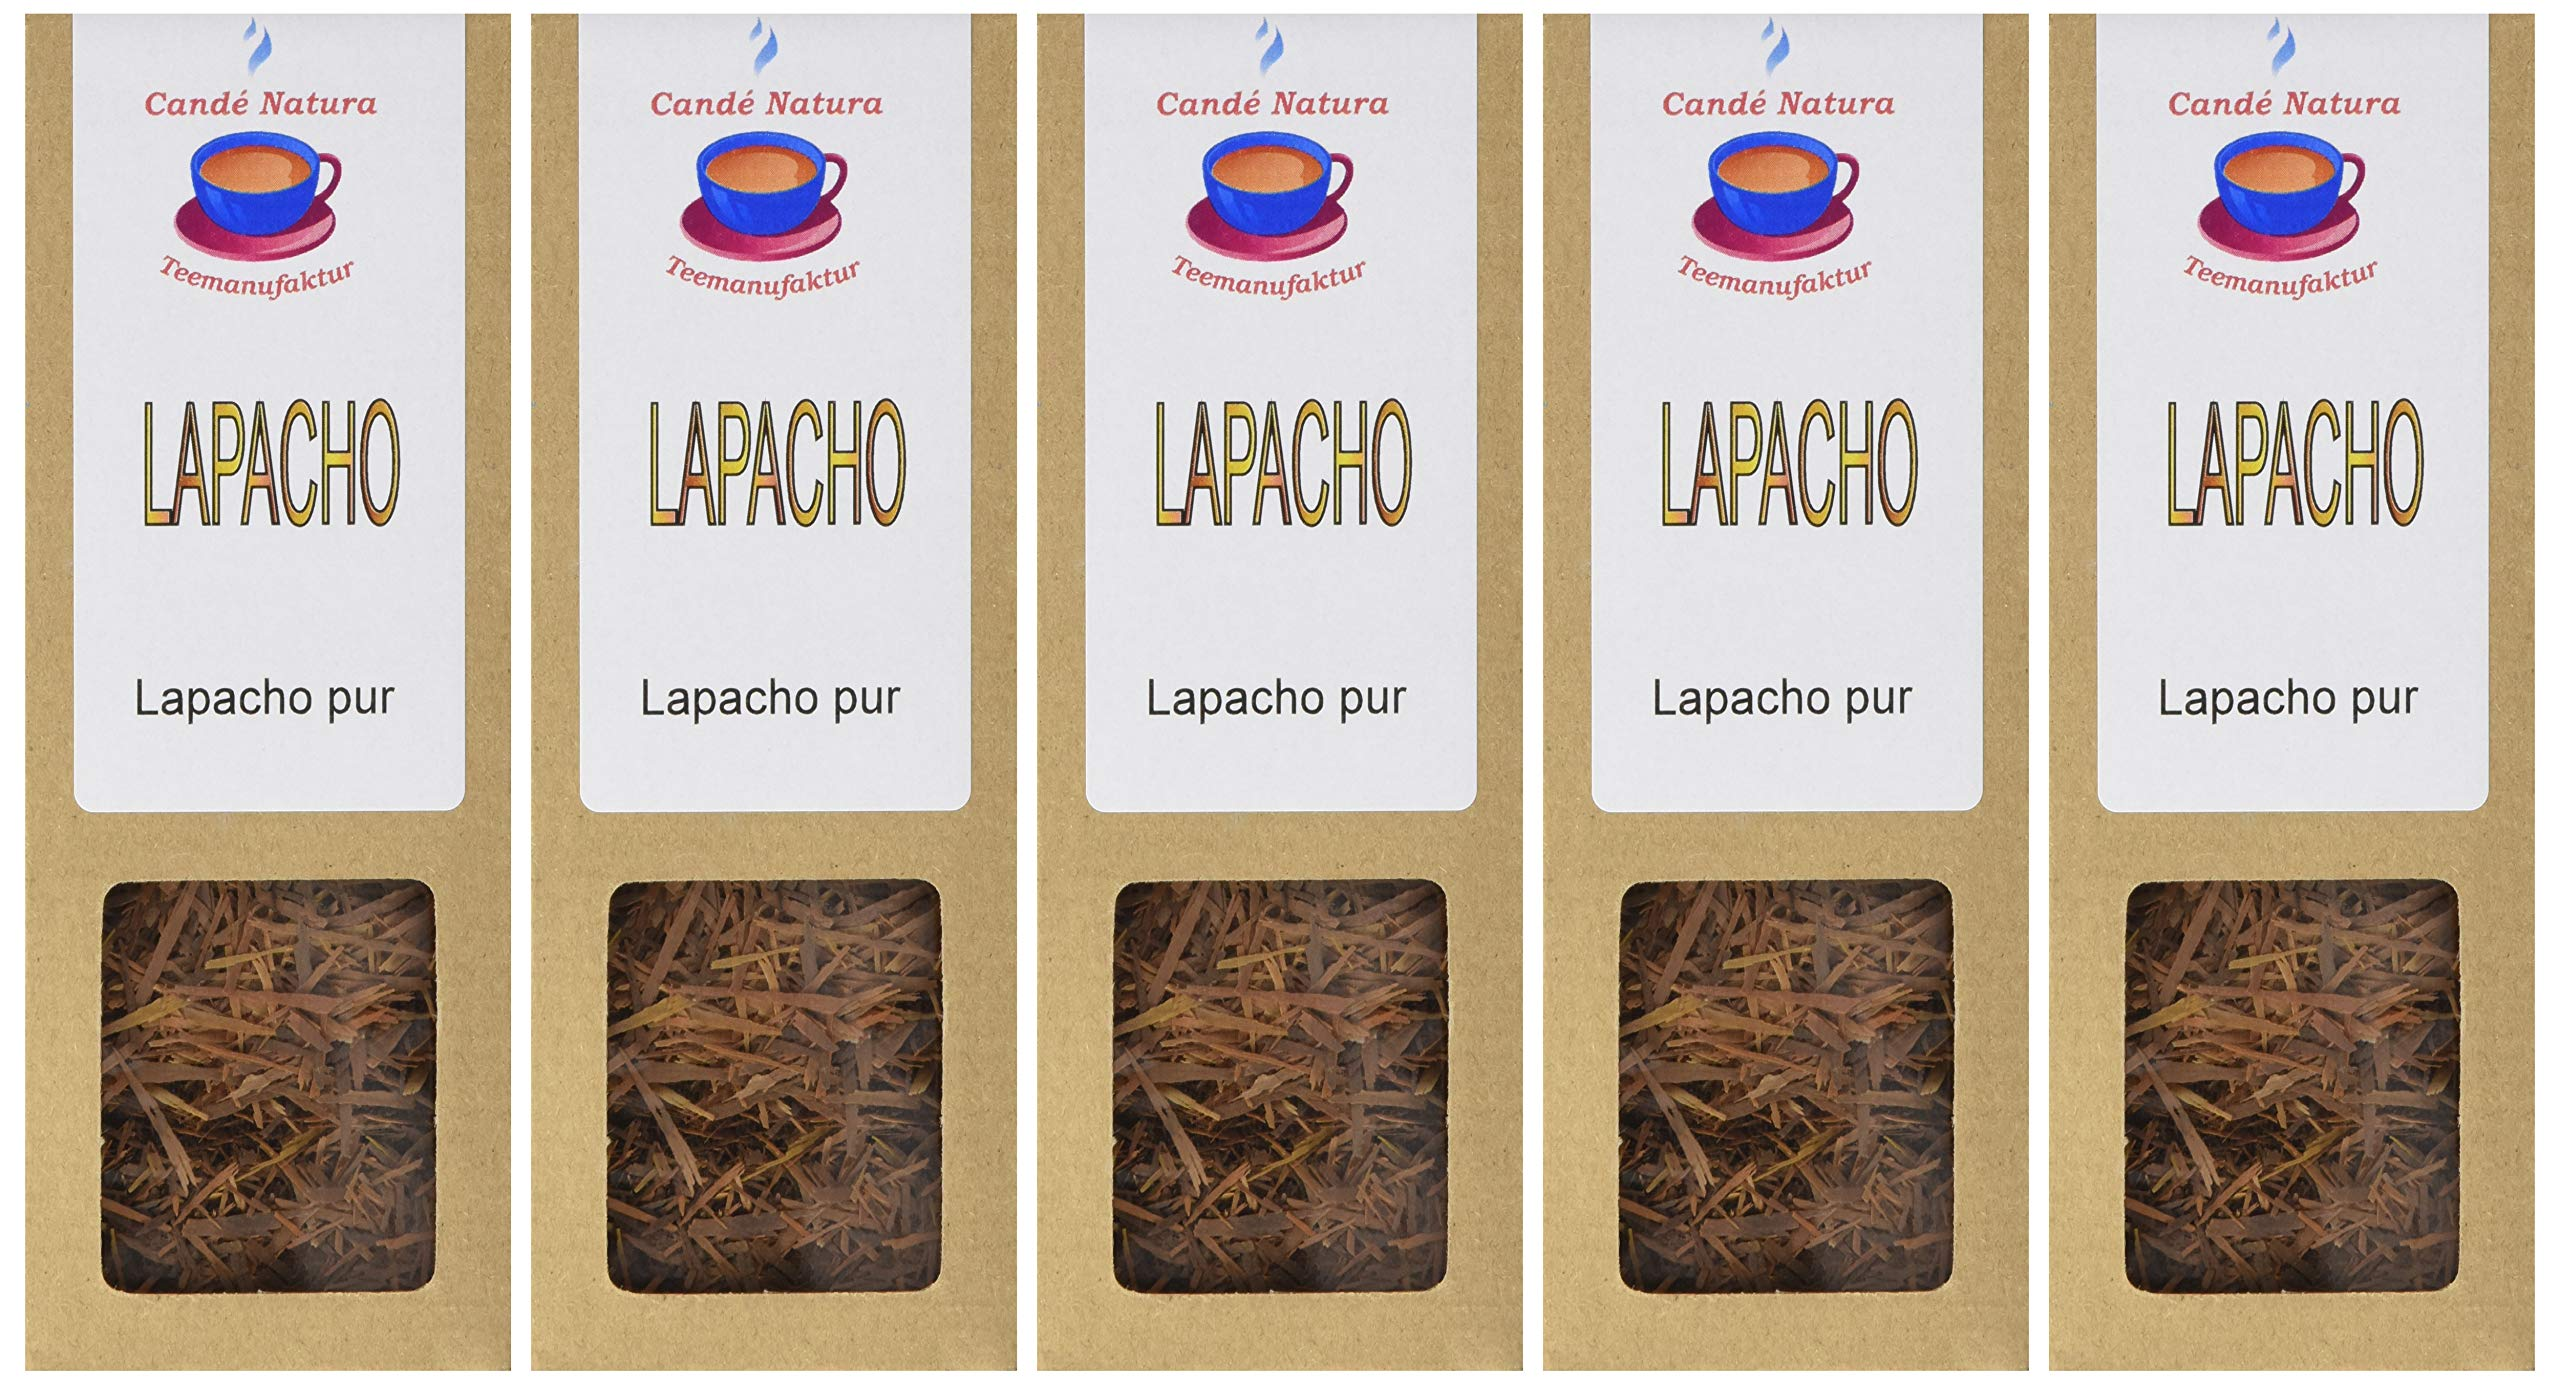 Cand-Natura-Teemanufaktur-Lapacho-Rindentee-pur-5er-Pack-5-x-60-g